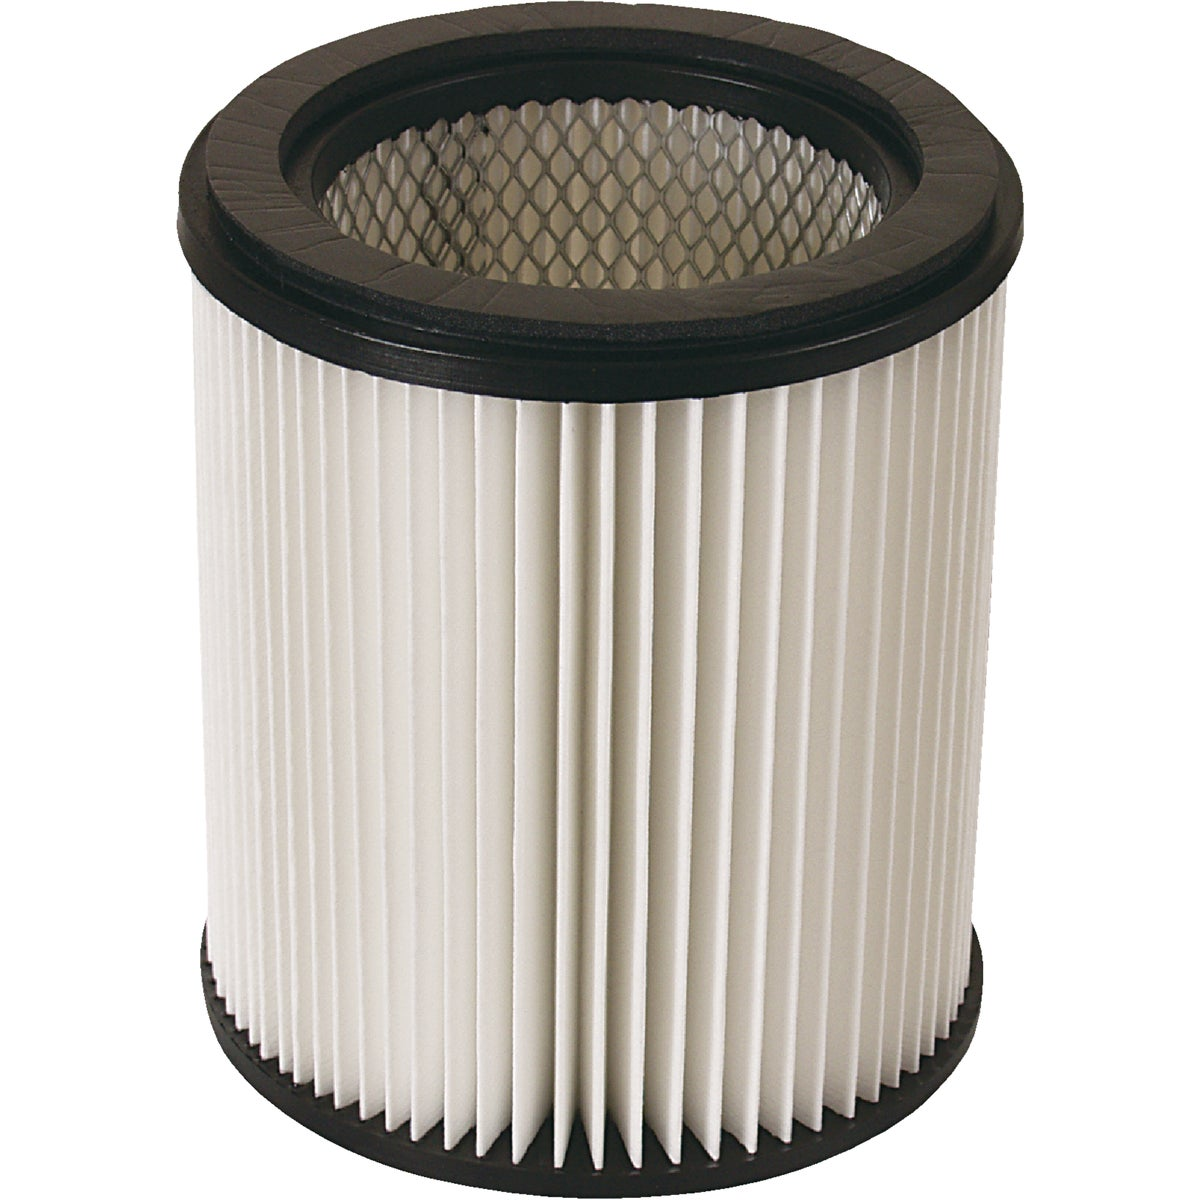 VACUUM CARTRIDGE FILTER - 19-0230 by Mi T M Corp